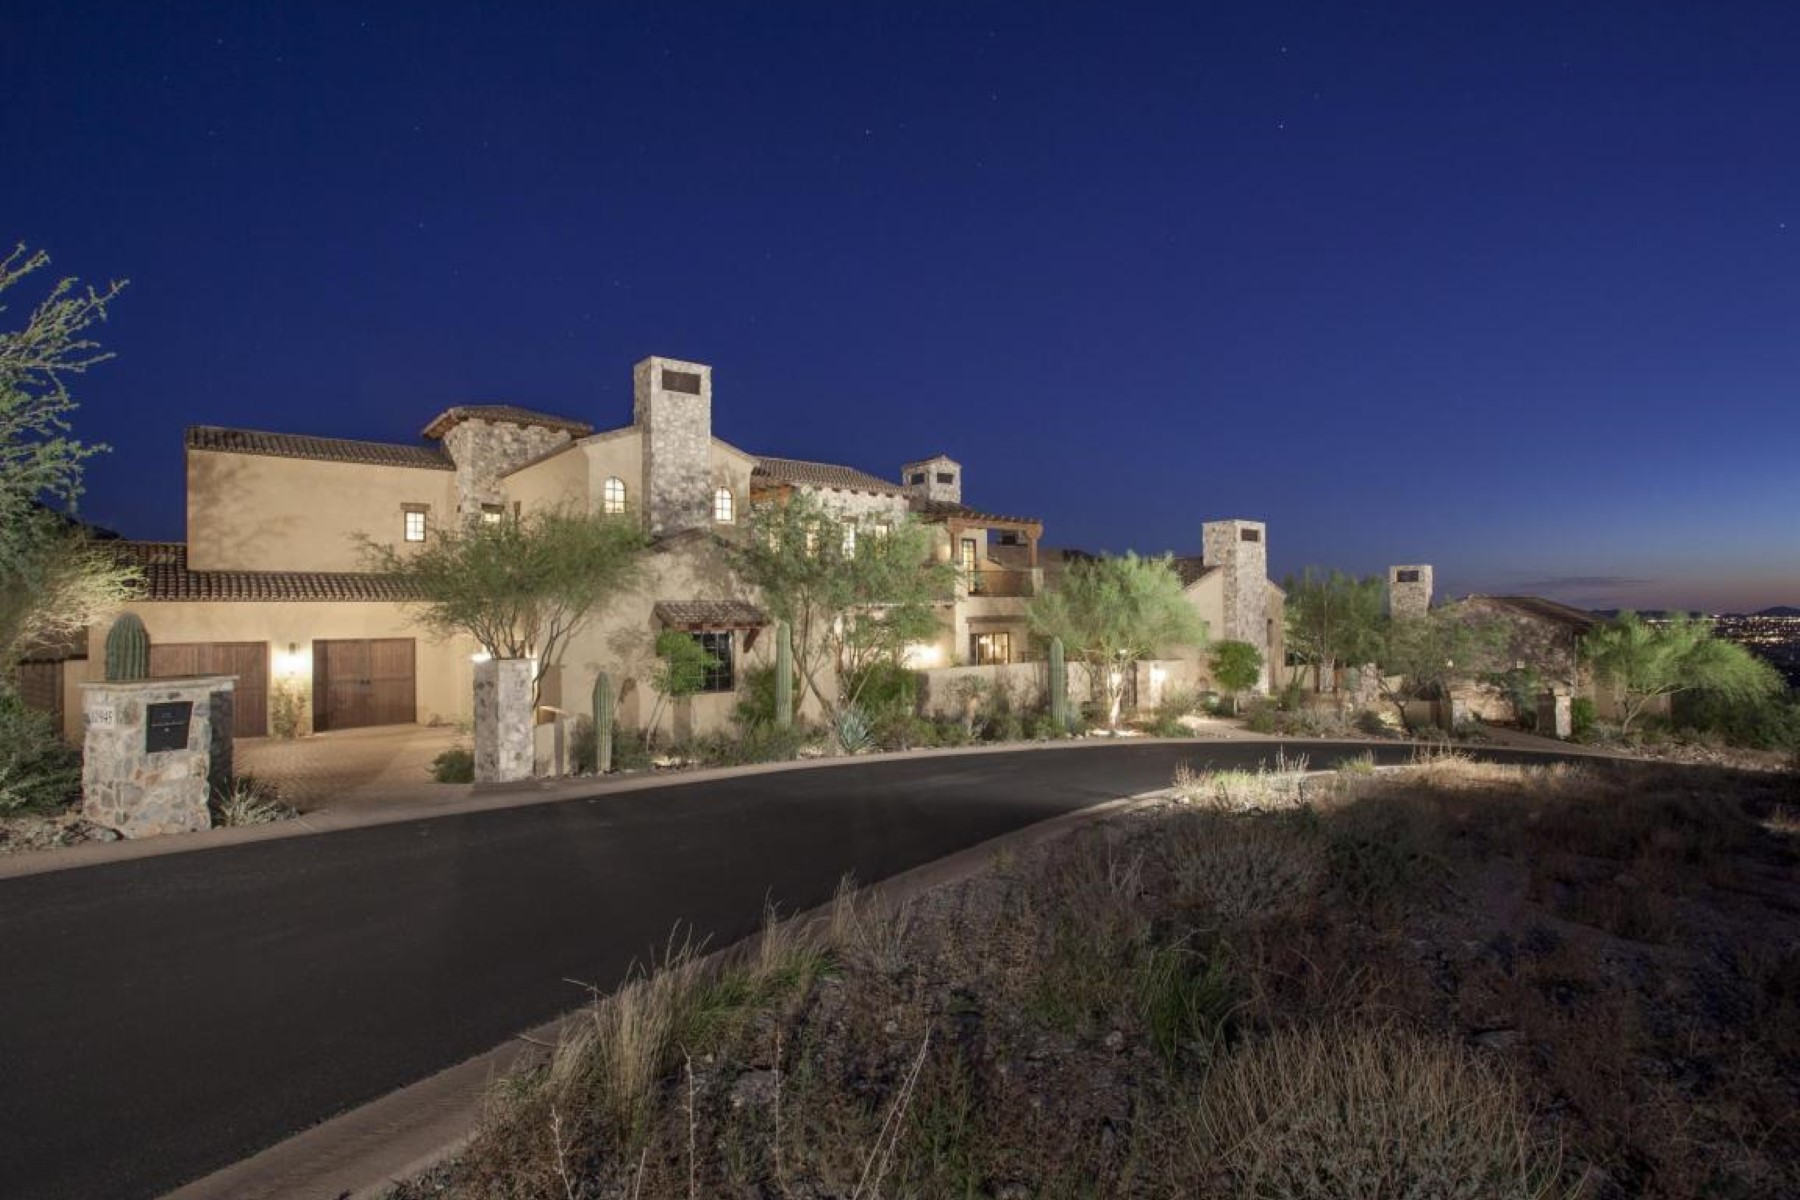 Maison unifamiliale pour l Vente à 1.68 acres in Silverleaf's Upper Canyon 10945 E Whistling Wind Way #1910 Scottsdale, Arizona 85255 États-Unis